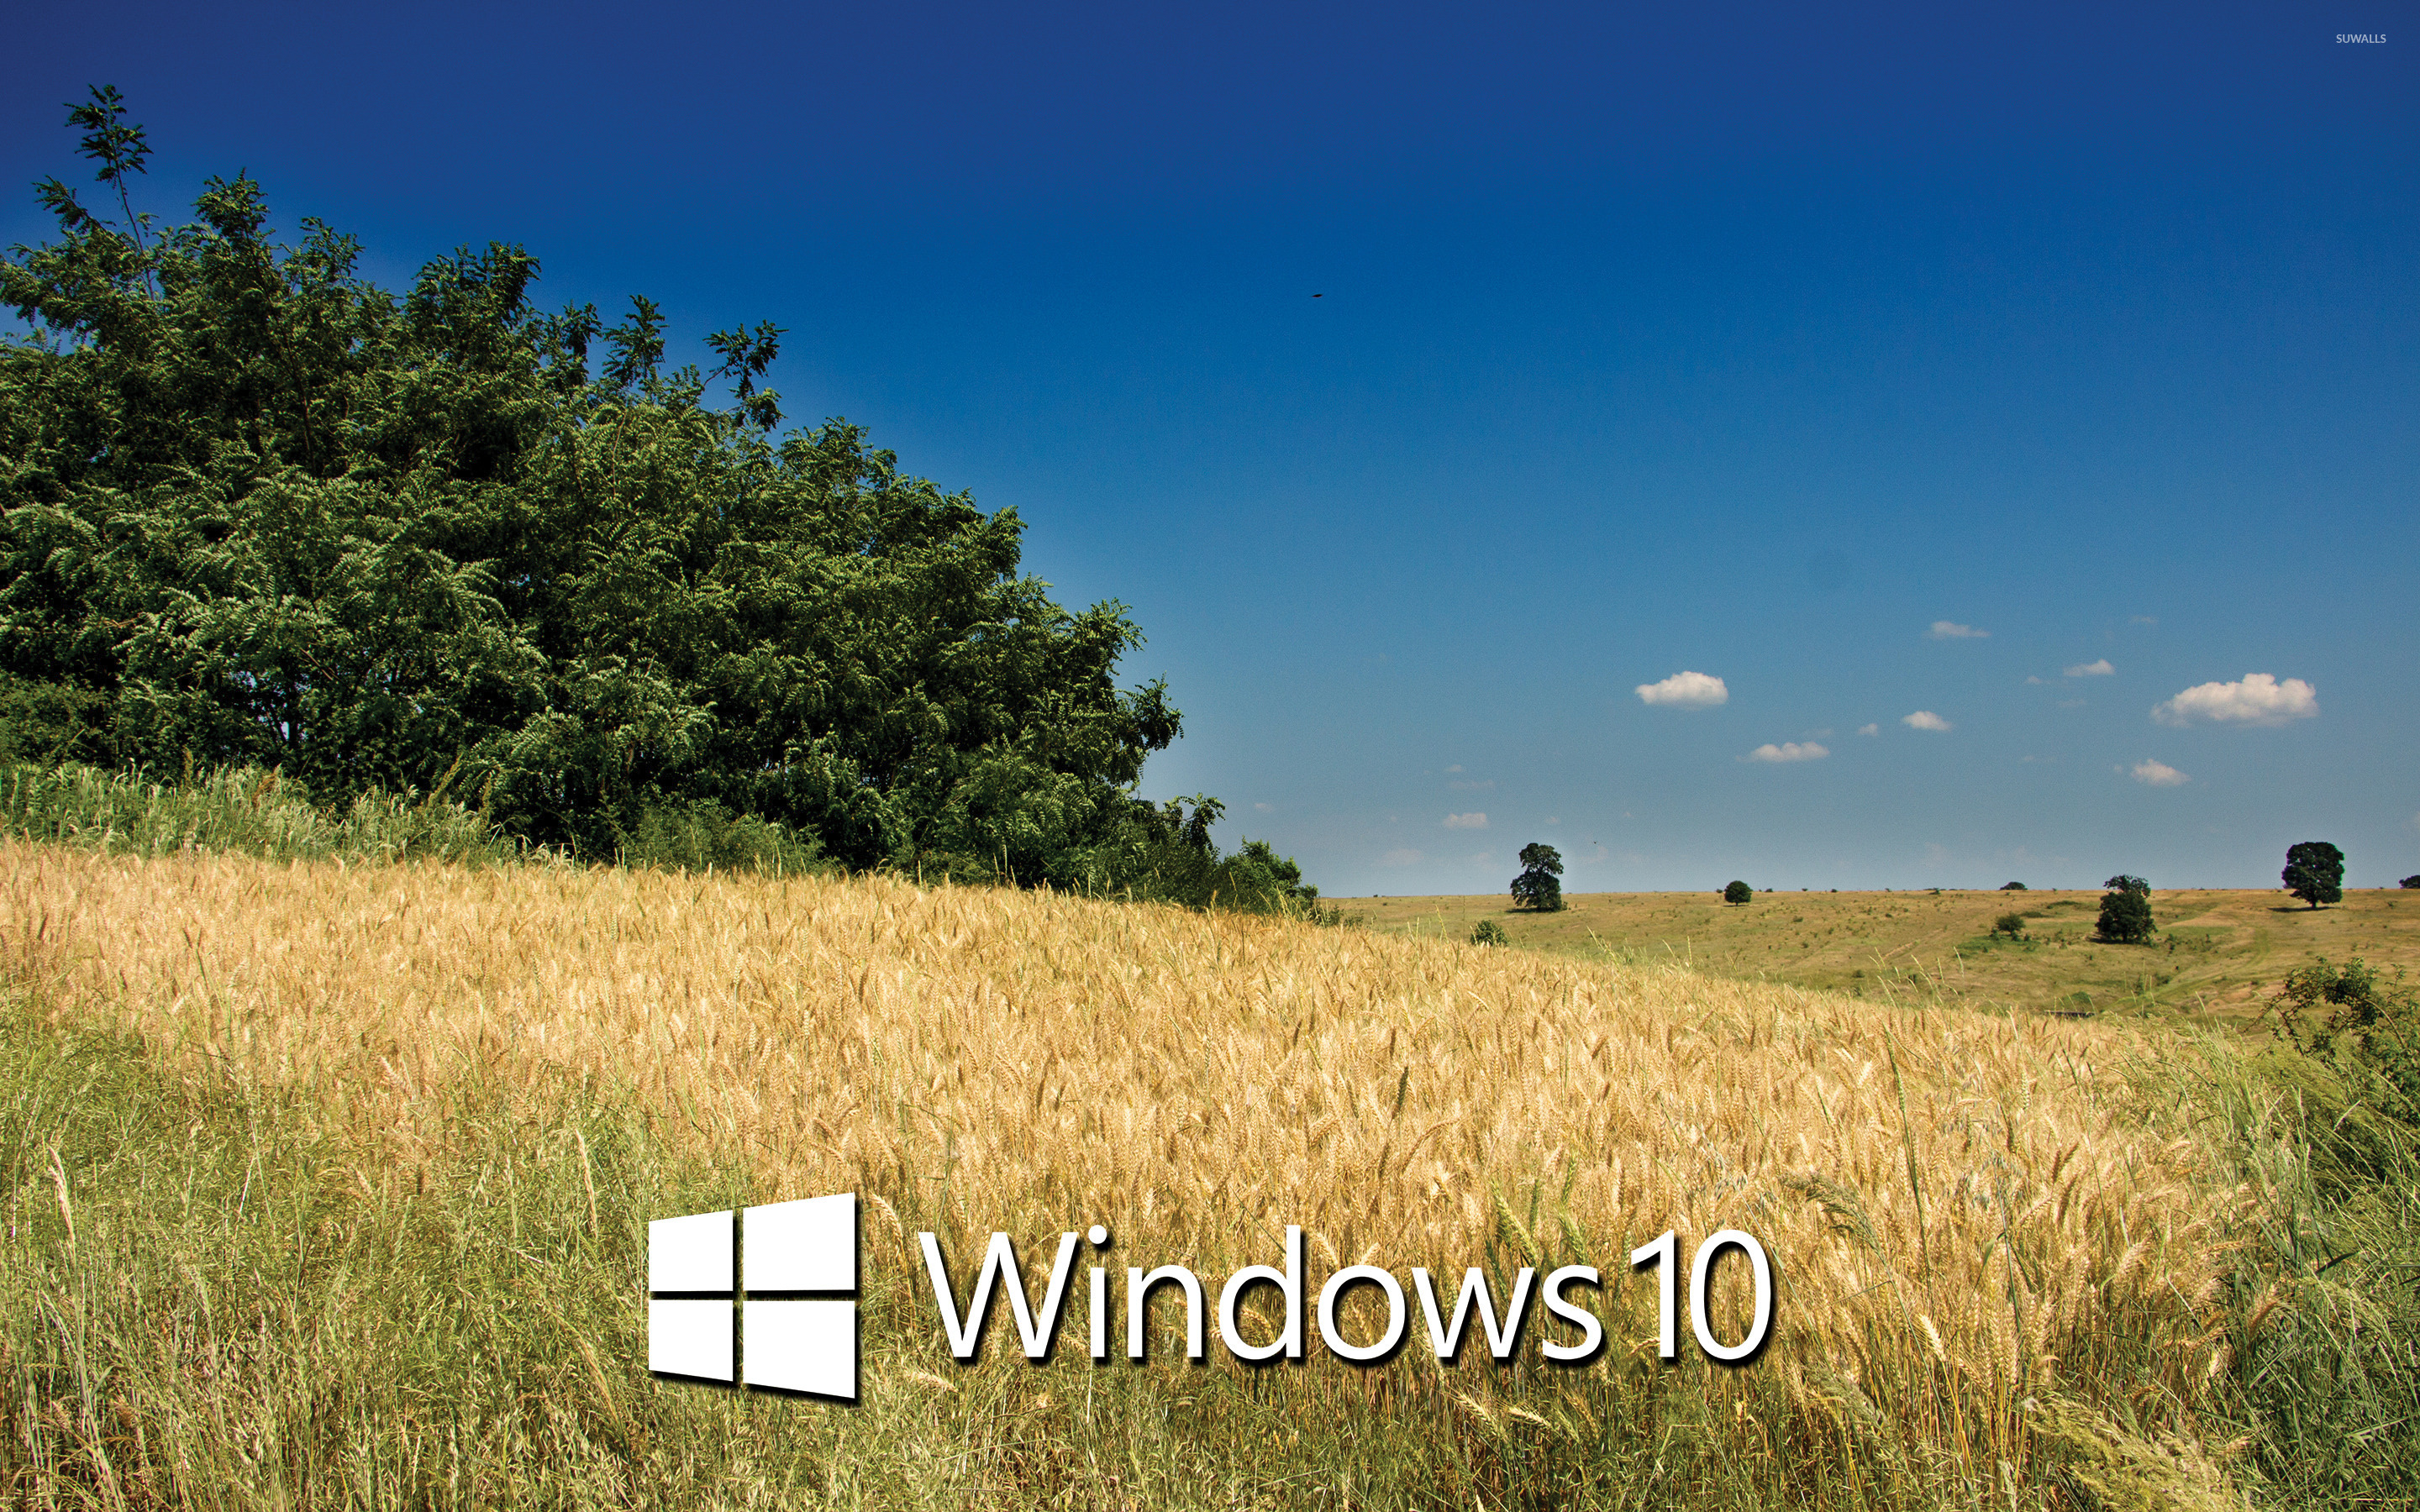 Windows 10 text logo on the wheat field wallpaper - Computer